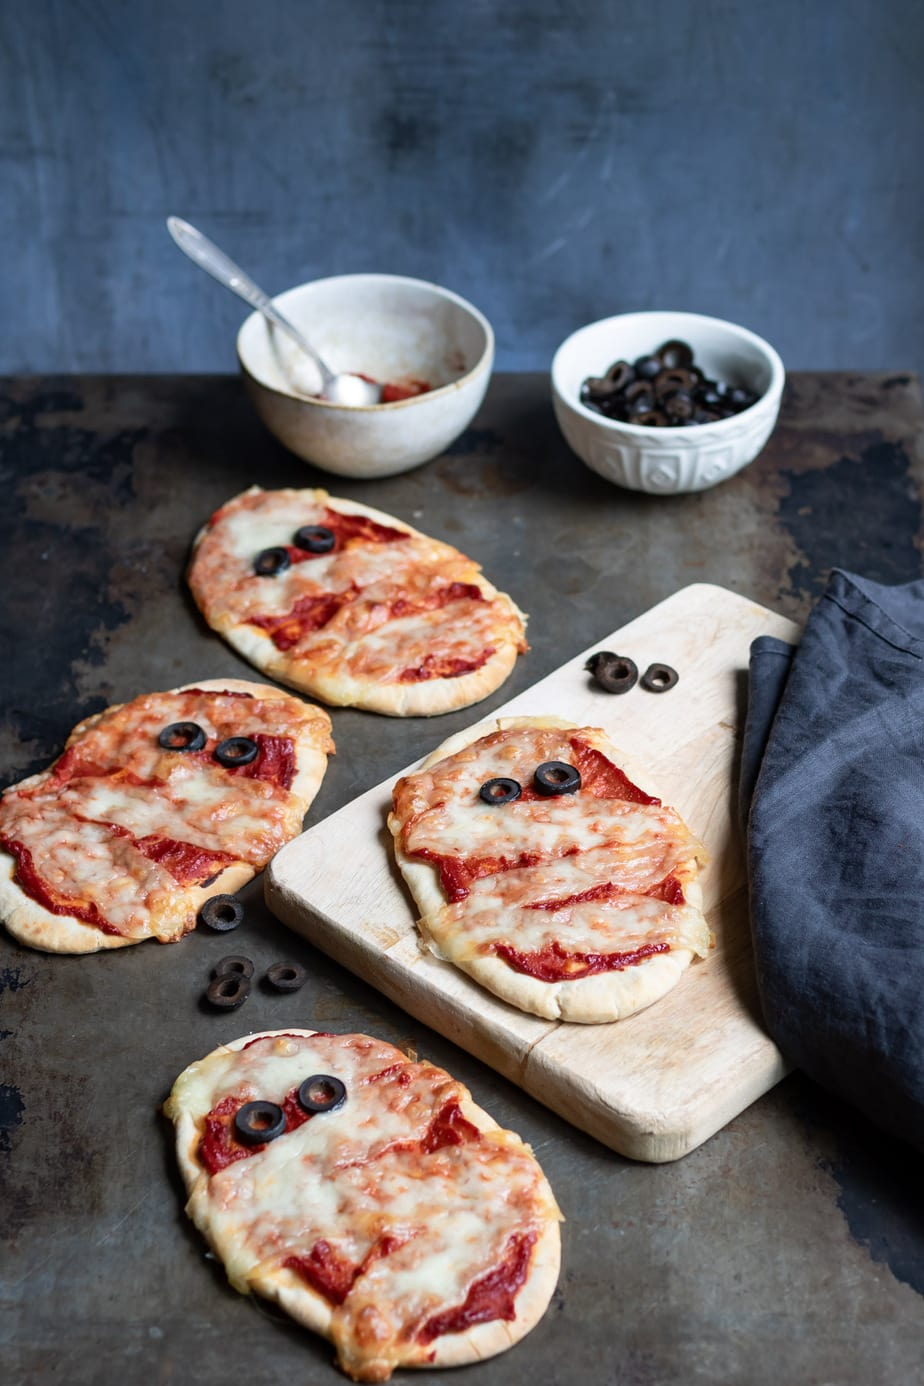 Pita pizzas with cheese and olives to look like Halloween Mummies.